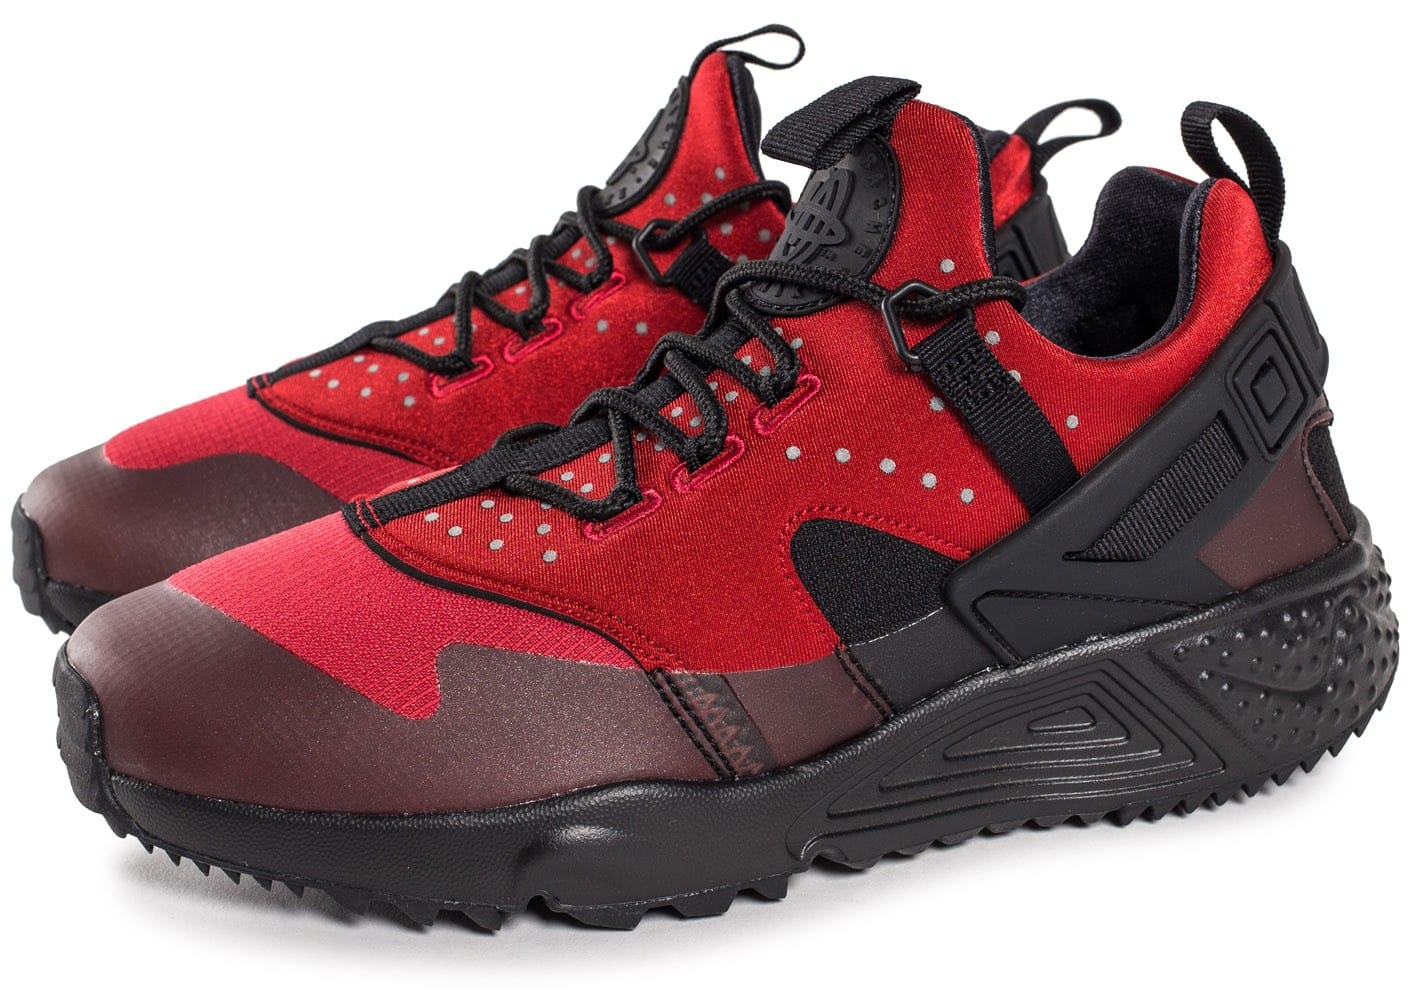 Nike Chaussures Air Huarache Utility Rouge Chaussures Nike Baskets Homme Chausport 231943